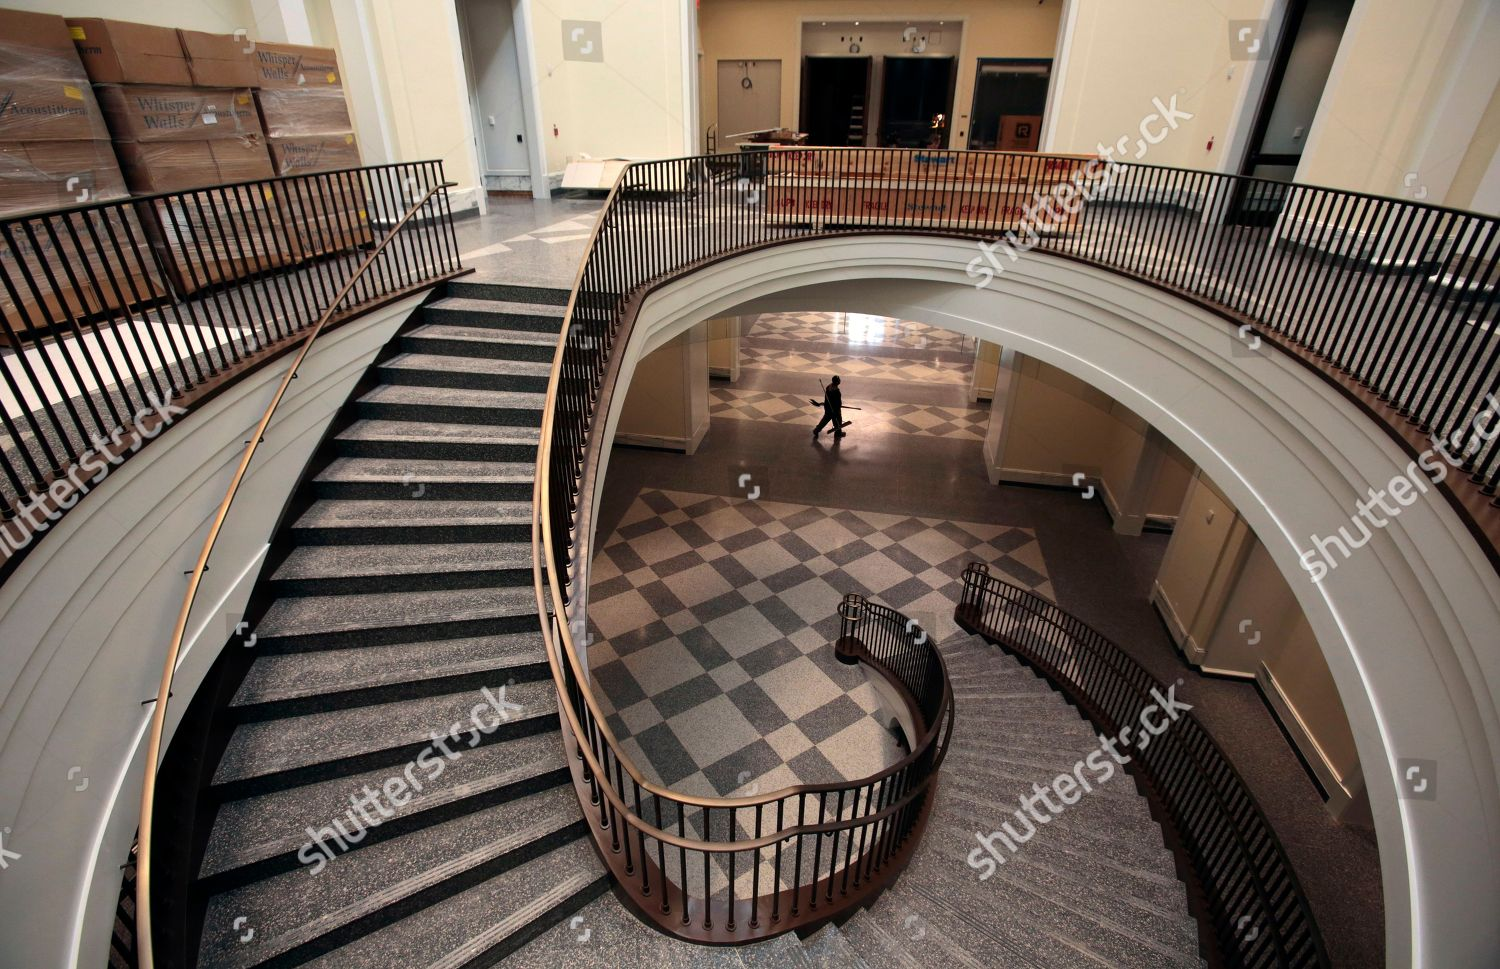 grand staircase seen construction continues Museum American